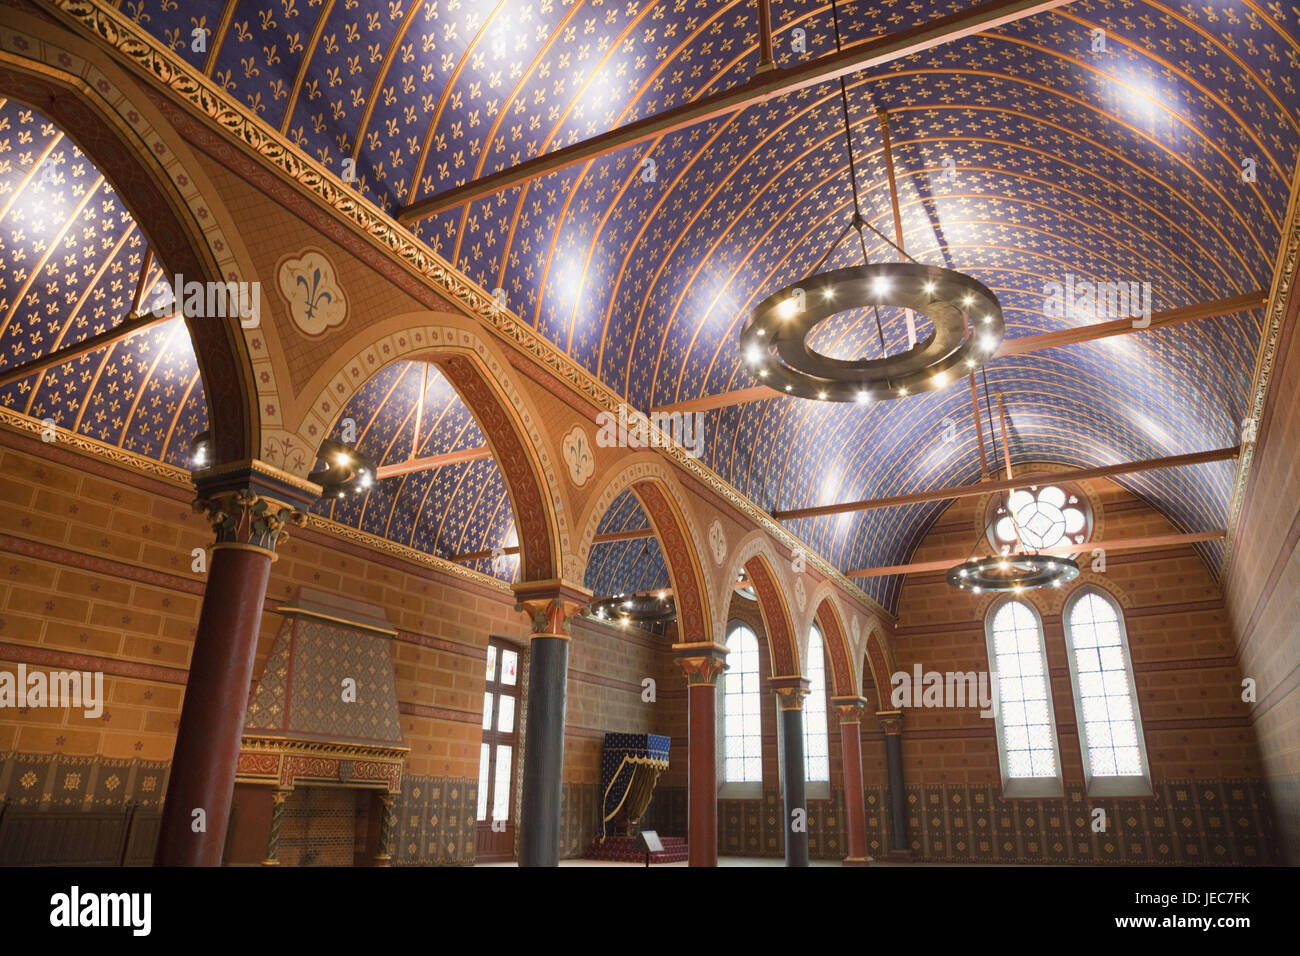 France, Loire valley, castle Blois, interior shot, state hall, - Stock Image